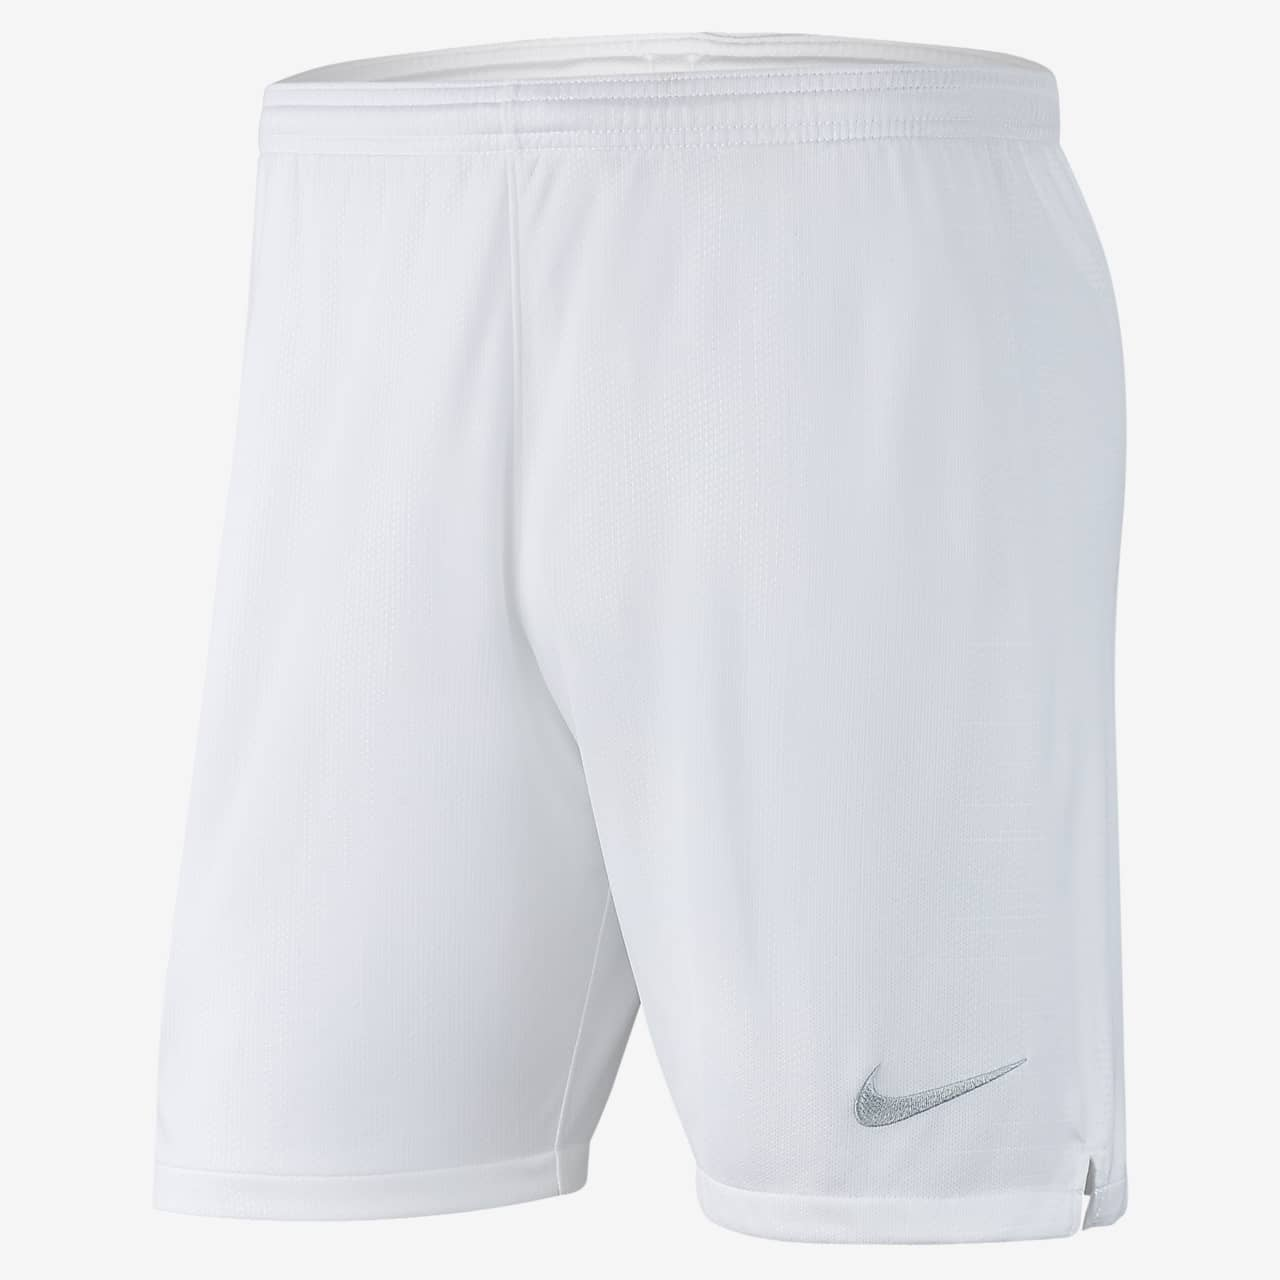 2018 England Stadium Away Men's Football Shorts